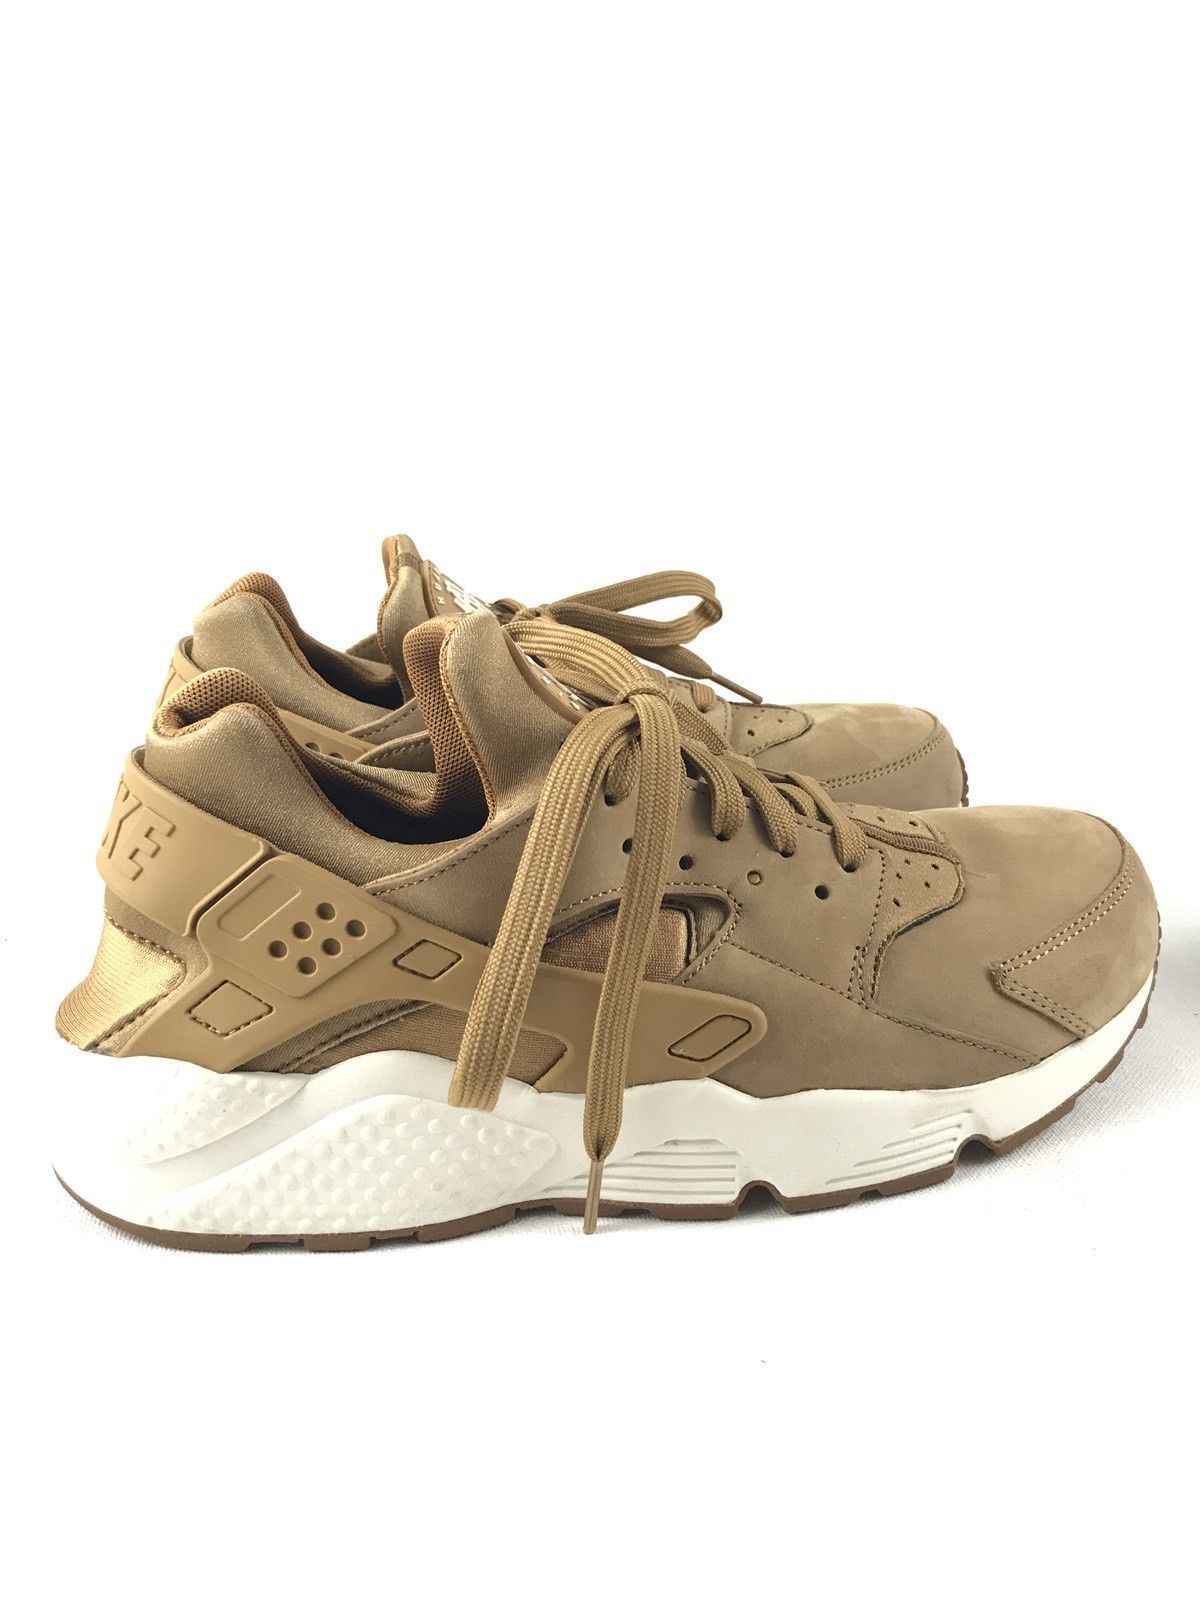 946c761db2 Nike Men's Air Huarache Sneakers Size 7 to and 50 similar items. S l1600